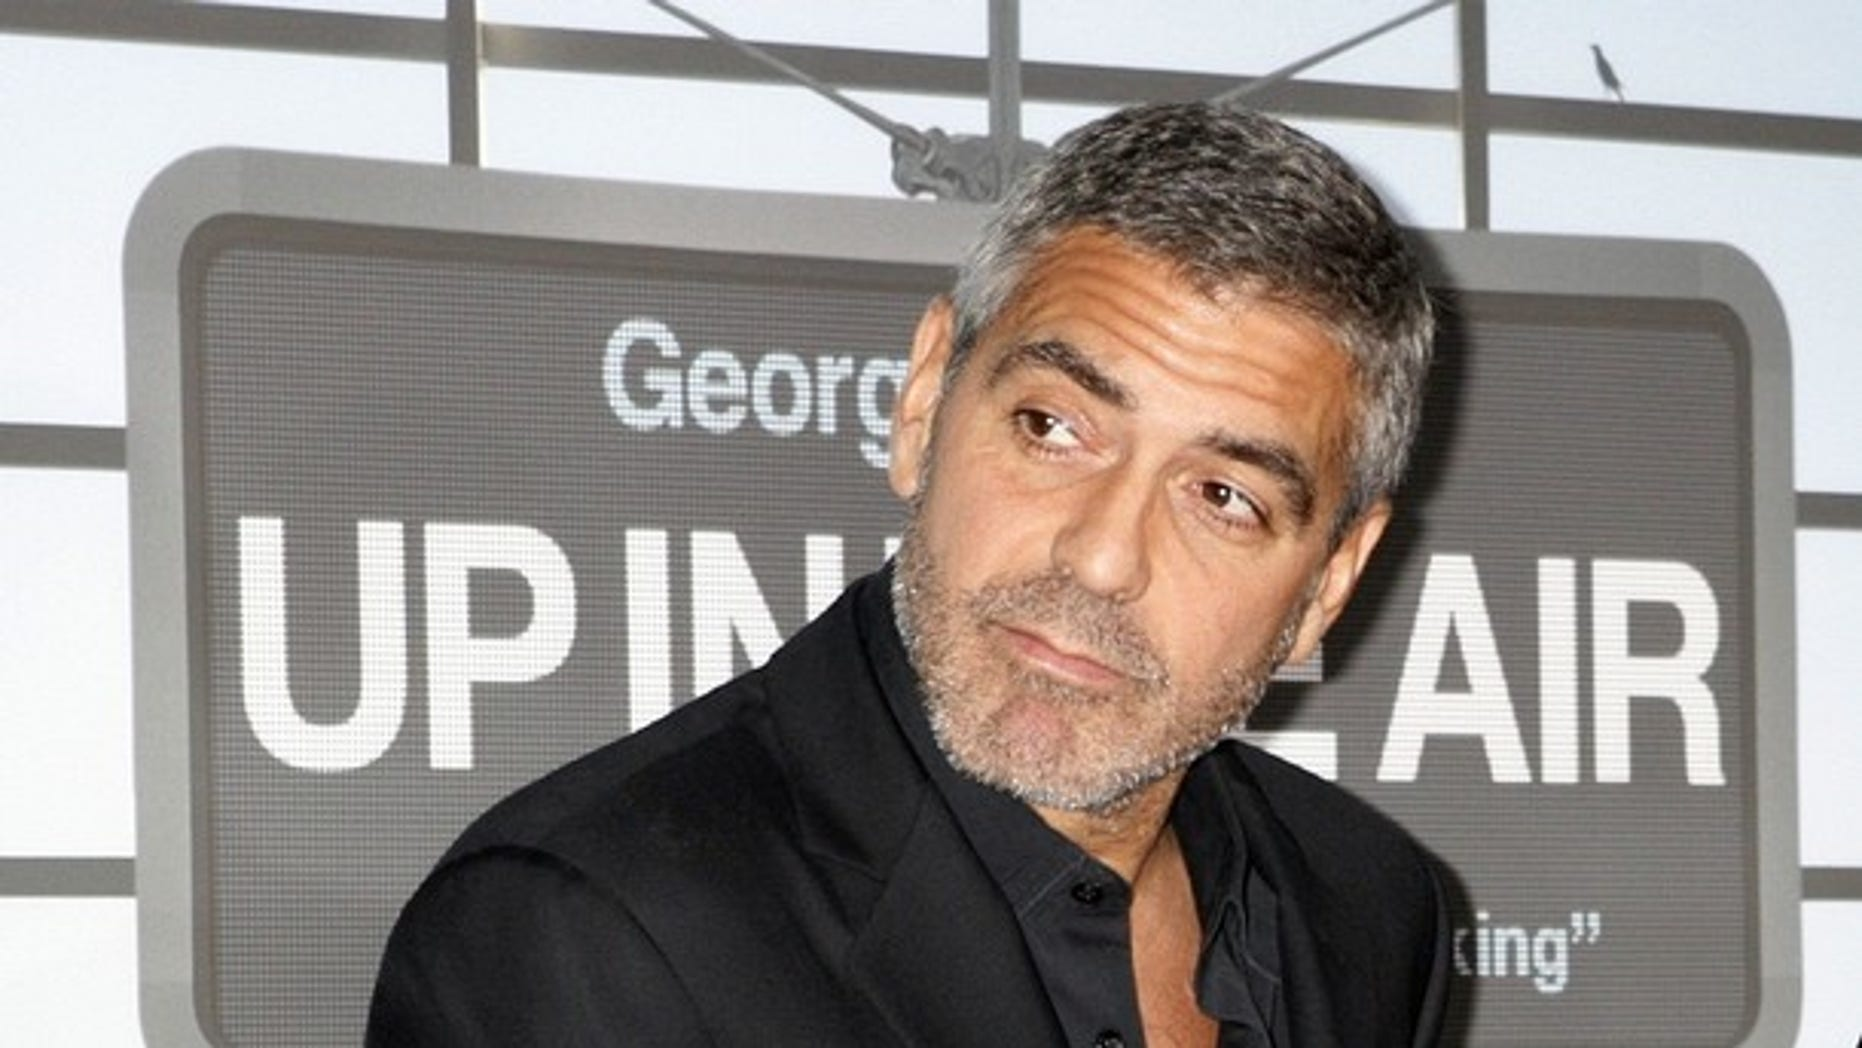 """Actor George Clooney, star of the film """"Up in the Air"""" poses on the red carpet at the film's premiere in Los Angeles (REUTERS)"""